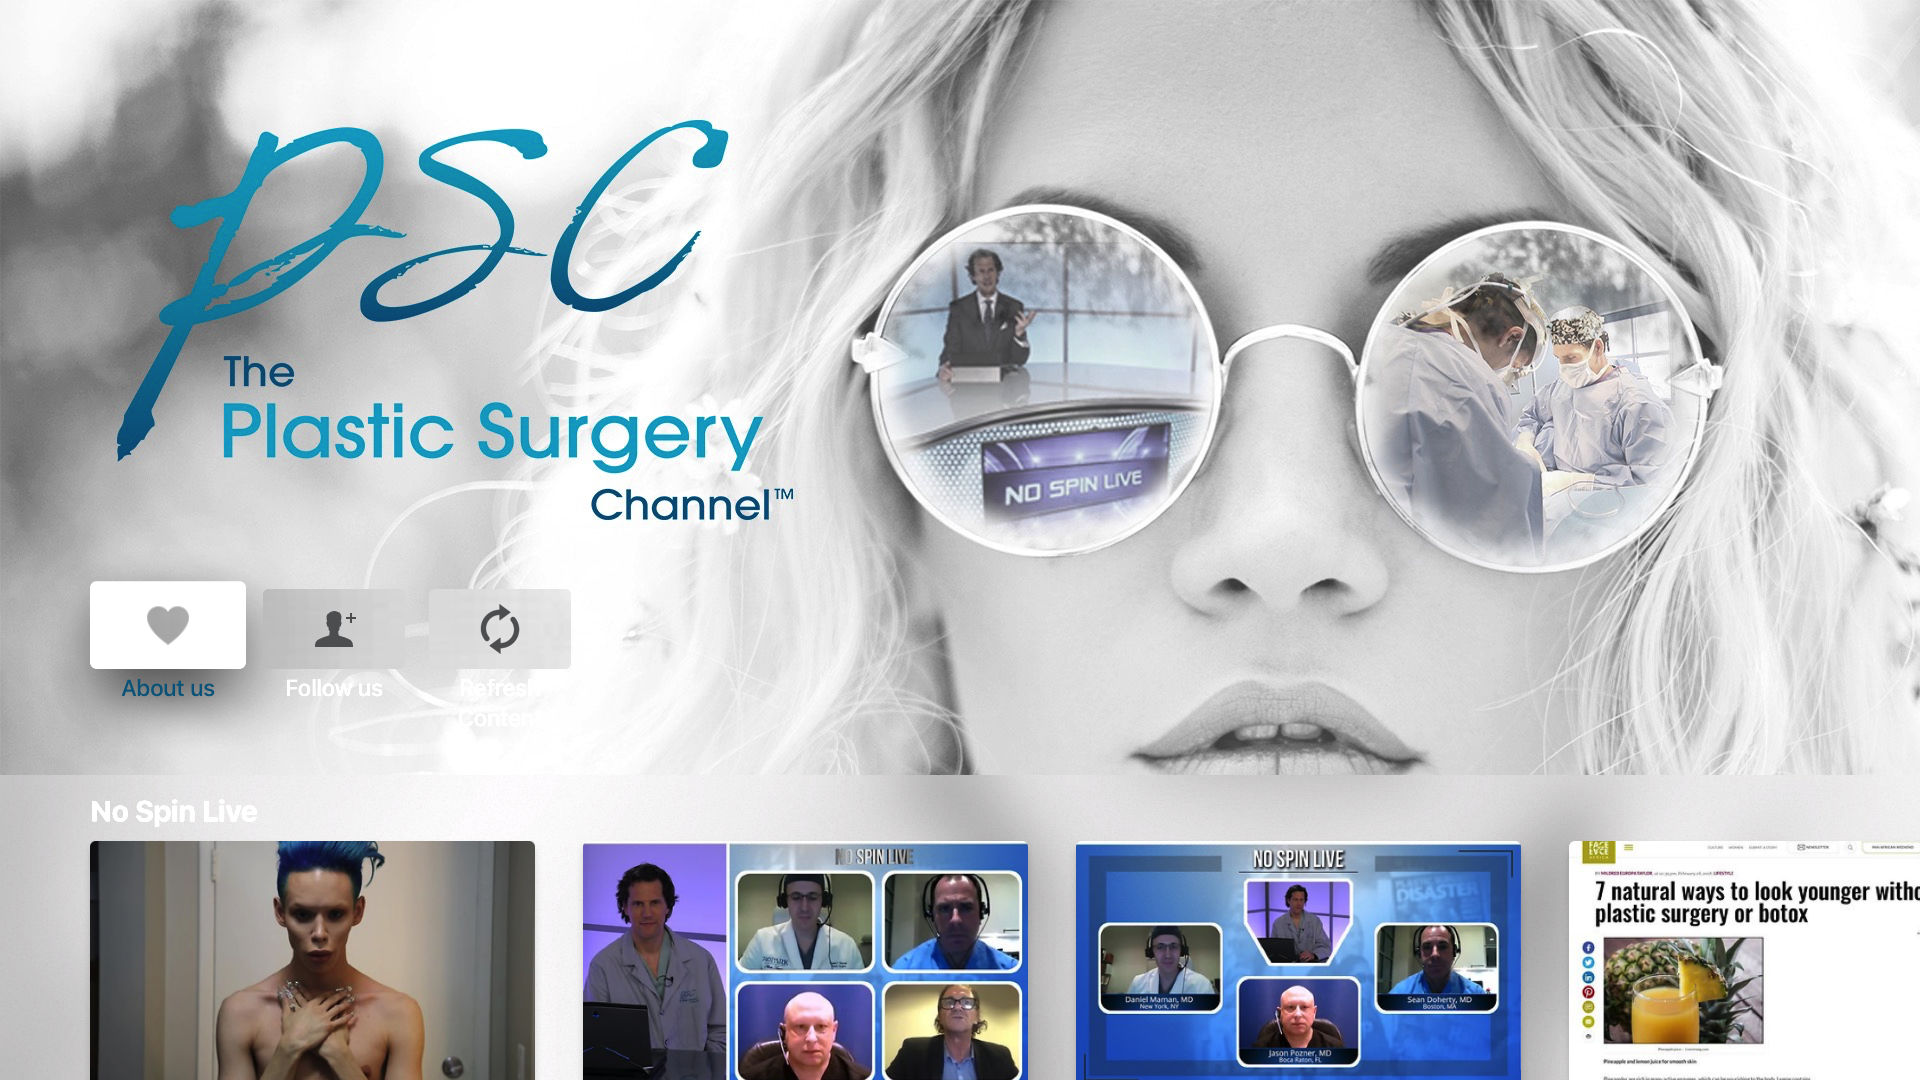 The Plastic Surgery Channel Screenshot 001